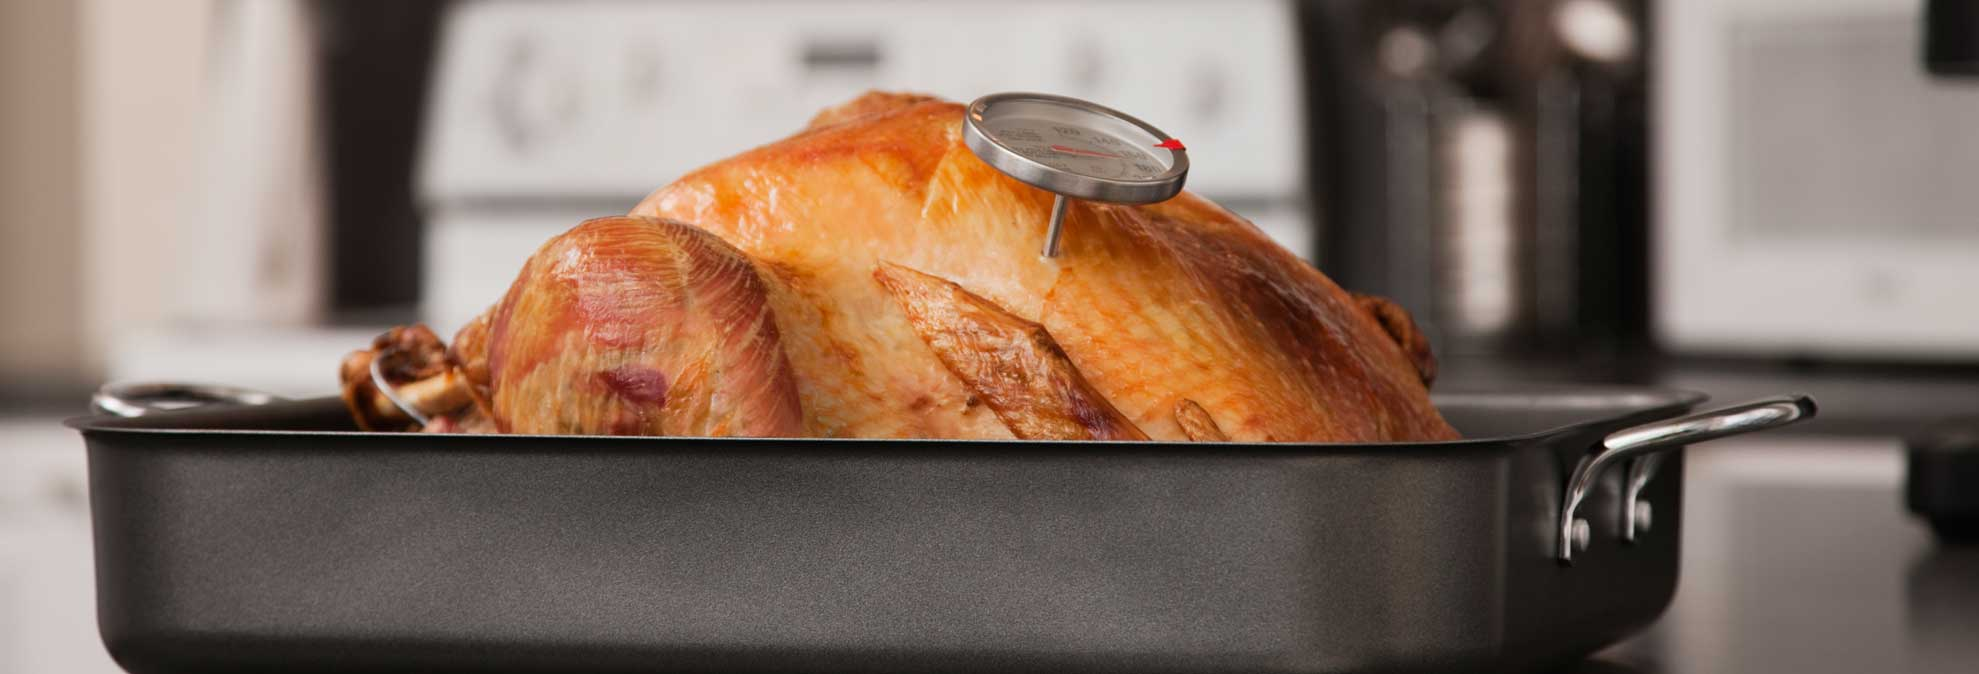 breast turkey thermometer Meat in